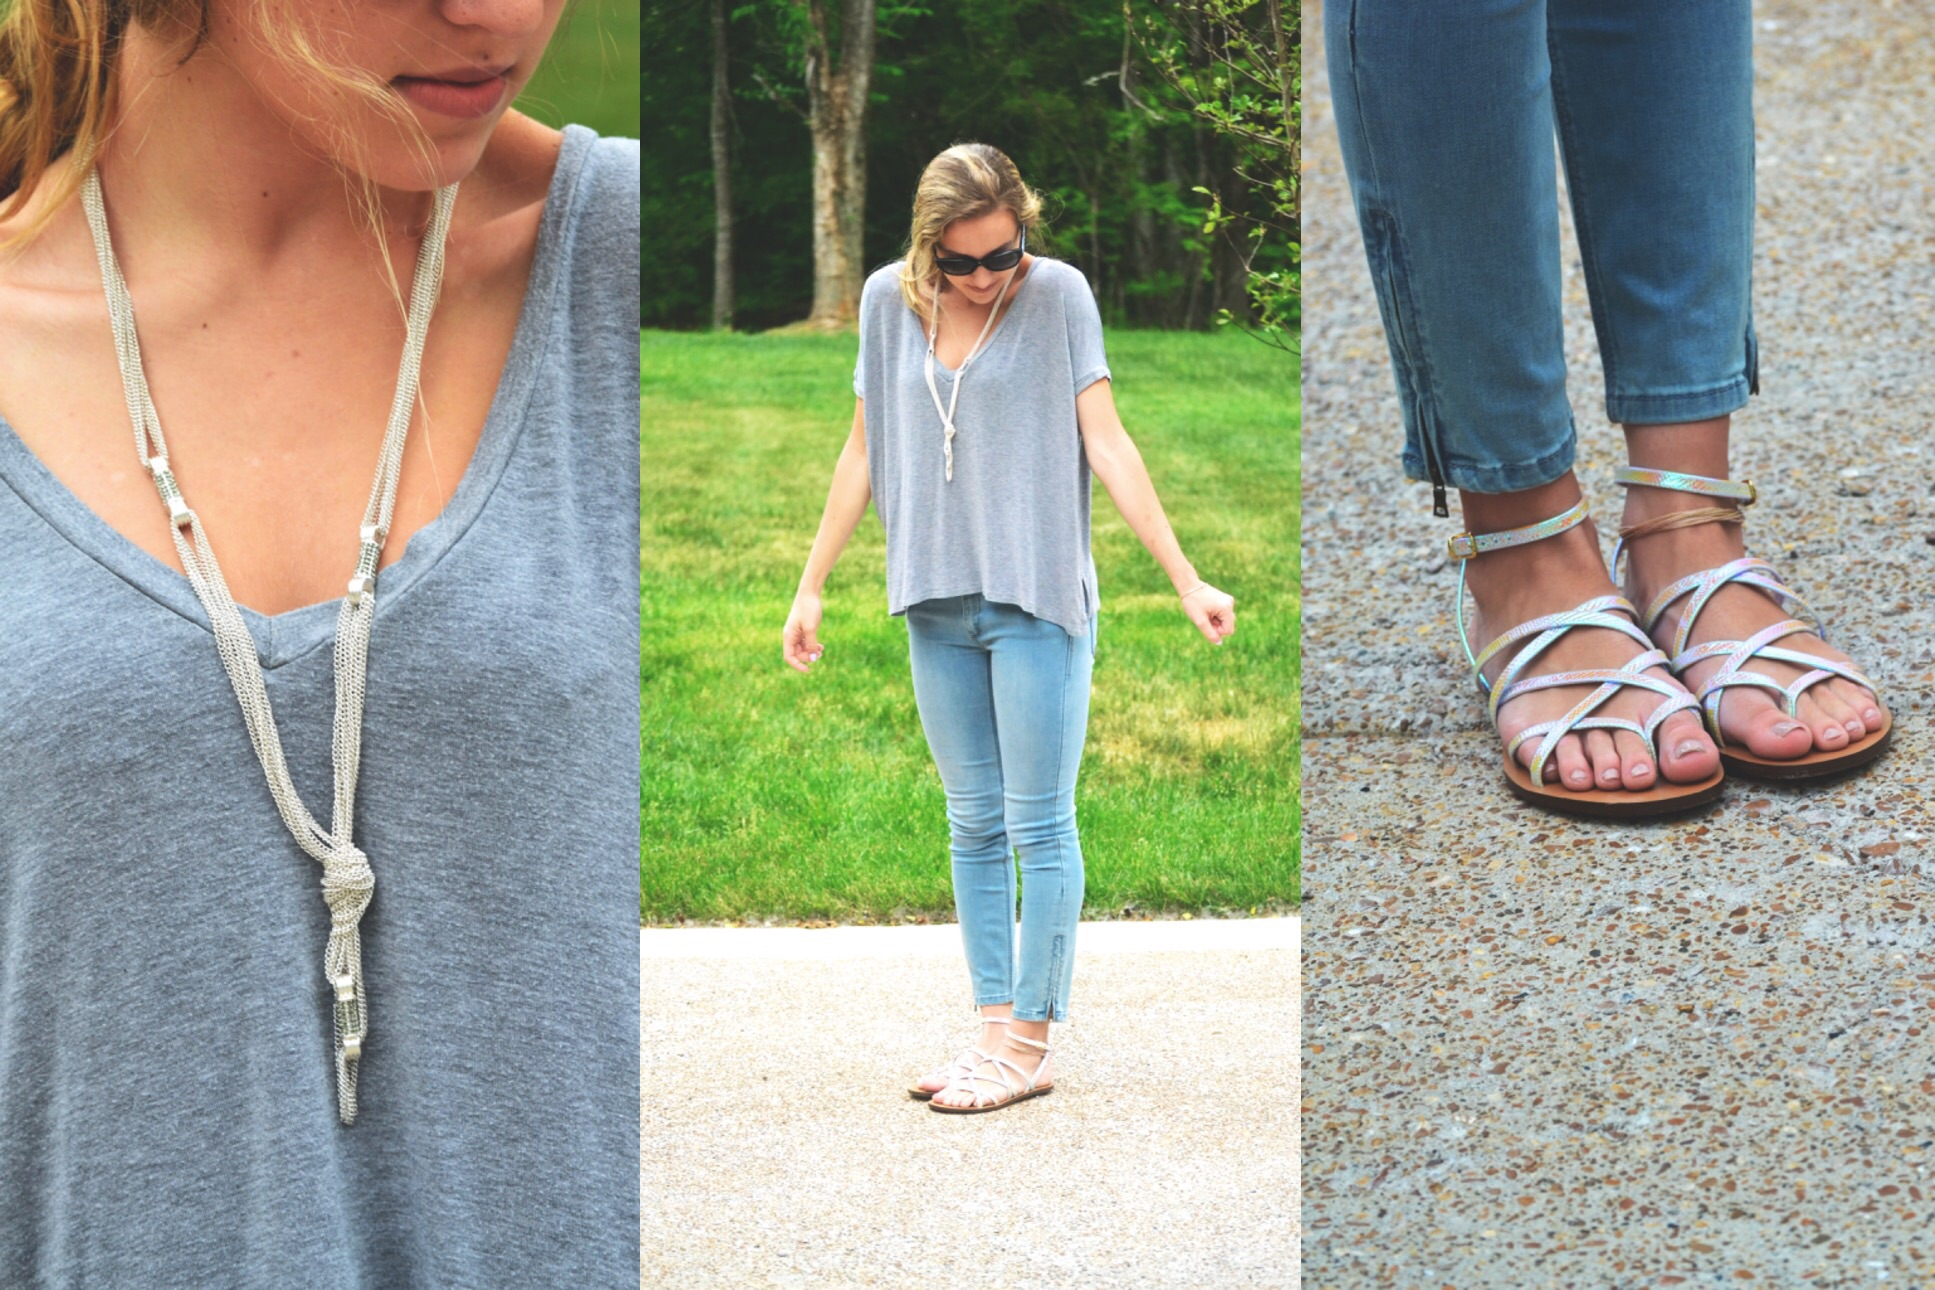 top: brandy melville; necklace: h&m; jeans: BCBG; shoes: j crew; lipstick: BITE beauty lip crayon in amaretto